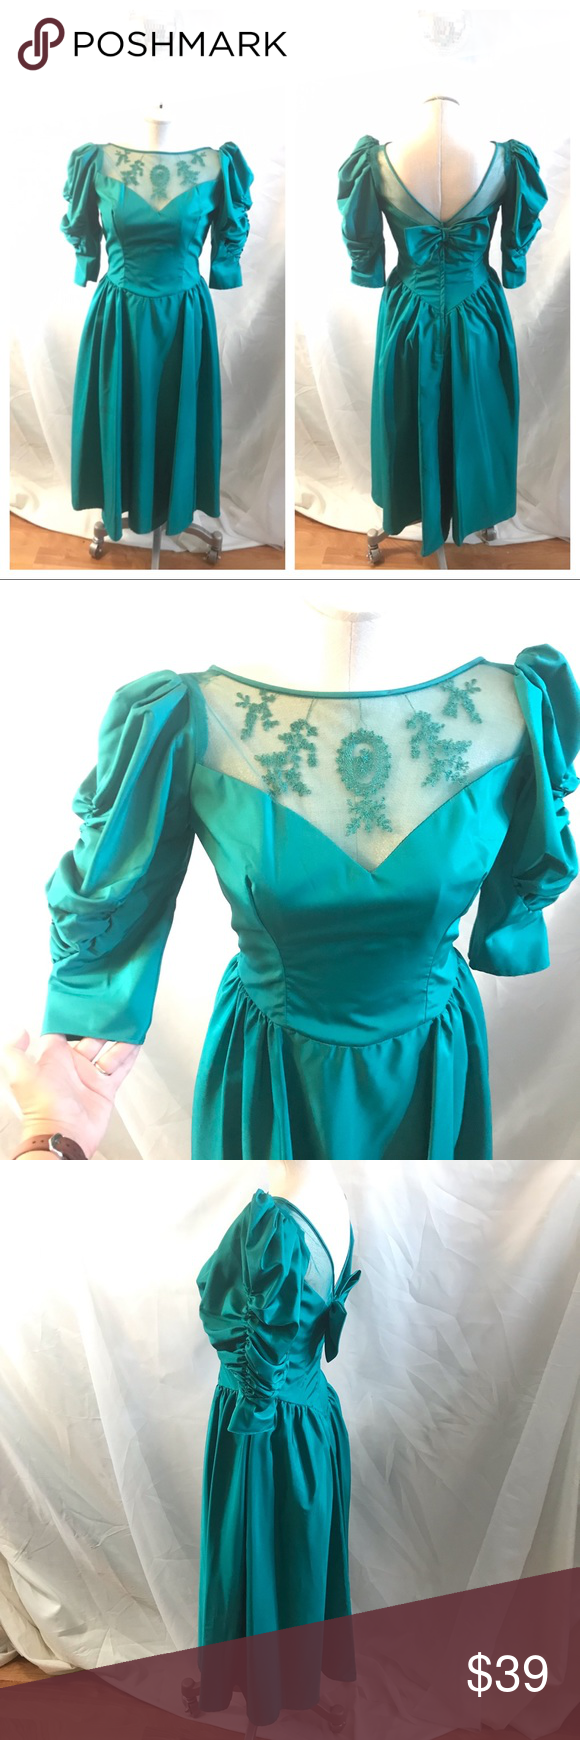 Vintage 80s 90s Puffy Sleeve Prom Bridesmaid Dress Prom Dresses Vintage Bridesmaid Dresses Prom Dresses [ 1740 x 580 Pixel ]